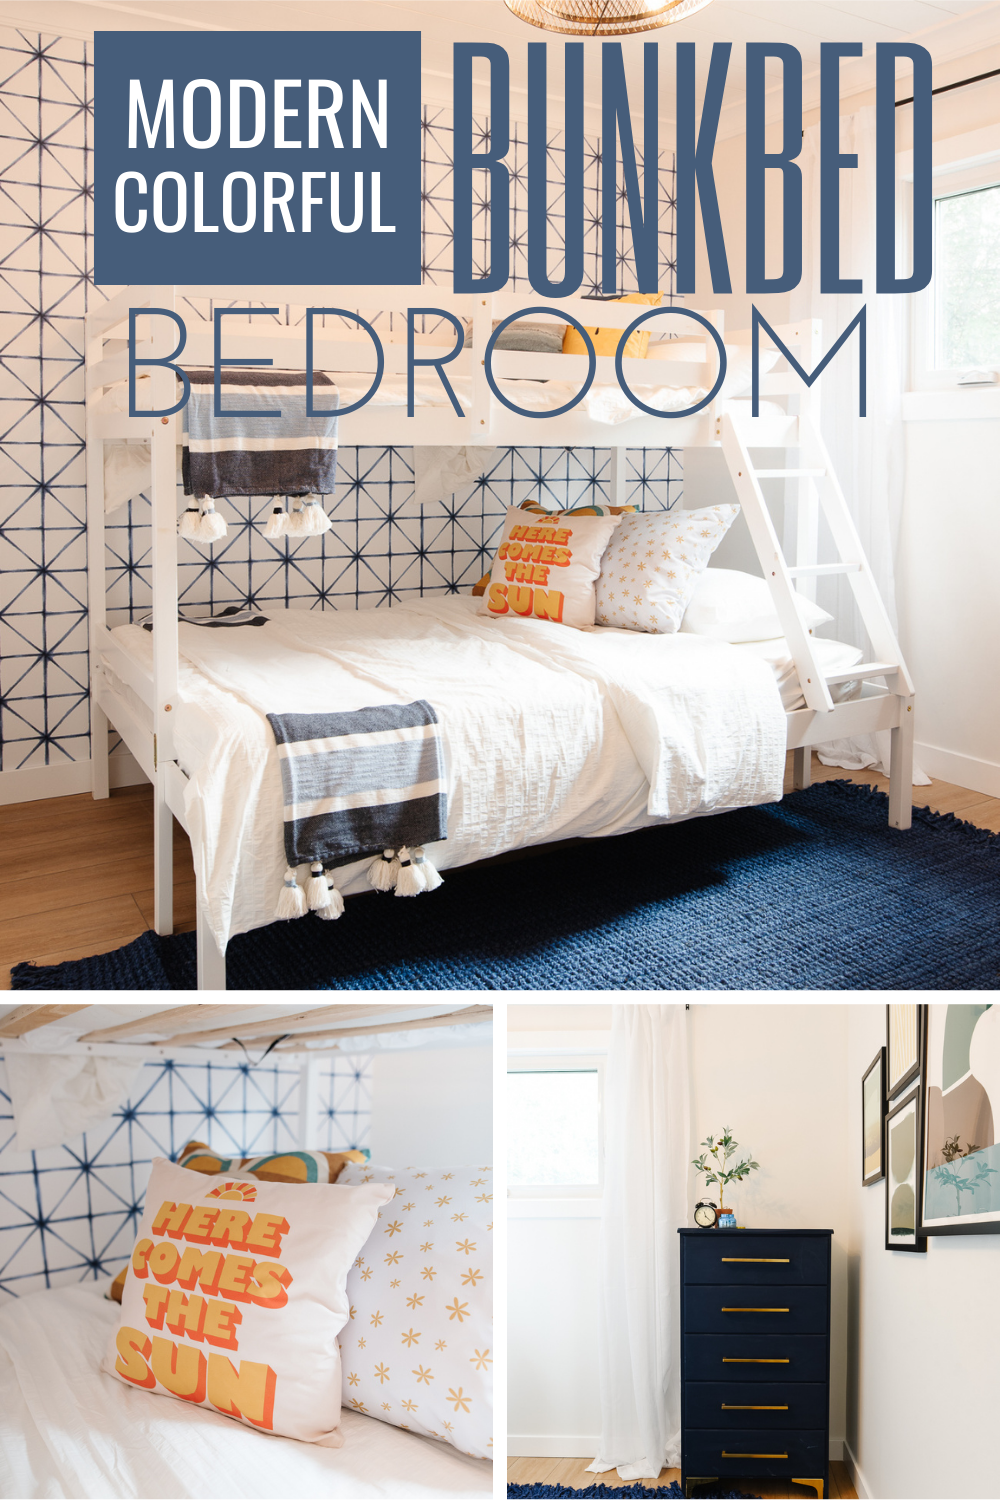 Come see how a plain, dated bedroom was transformed into a bright and cheerful bedroom with a bunk bed and blue, yellow and white colors